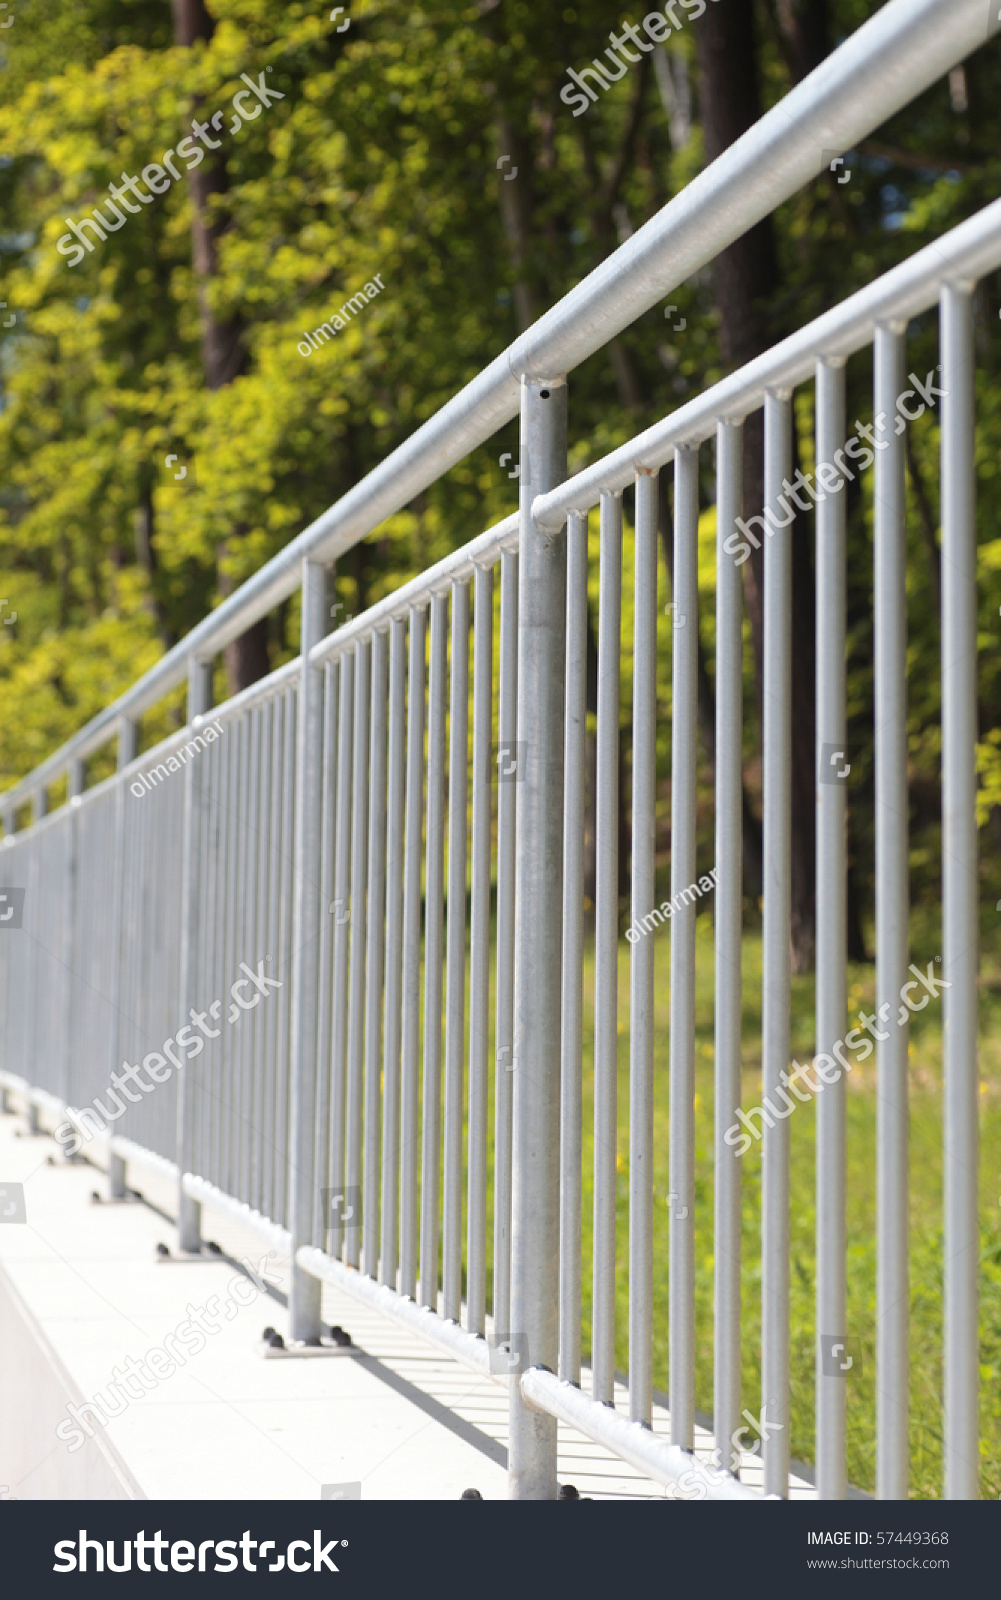 White Steel Fence Railing Outdoor Stock Photo 57449368